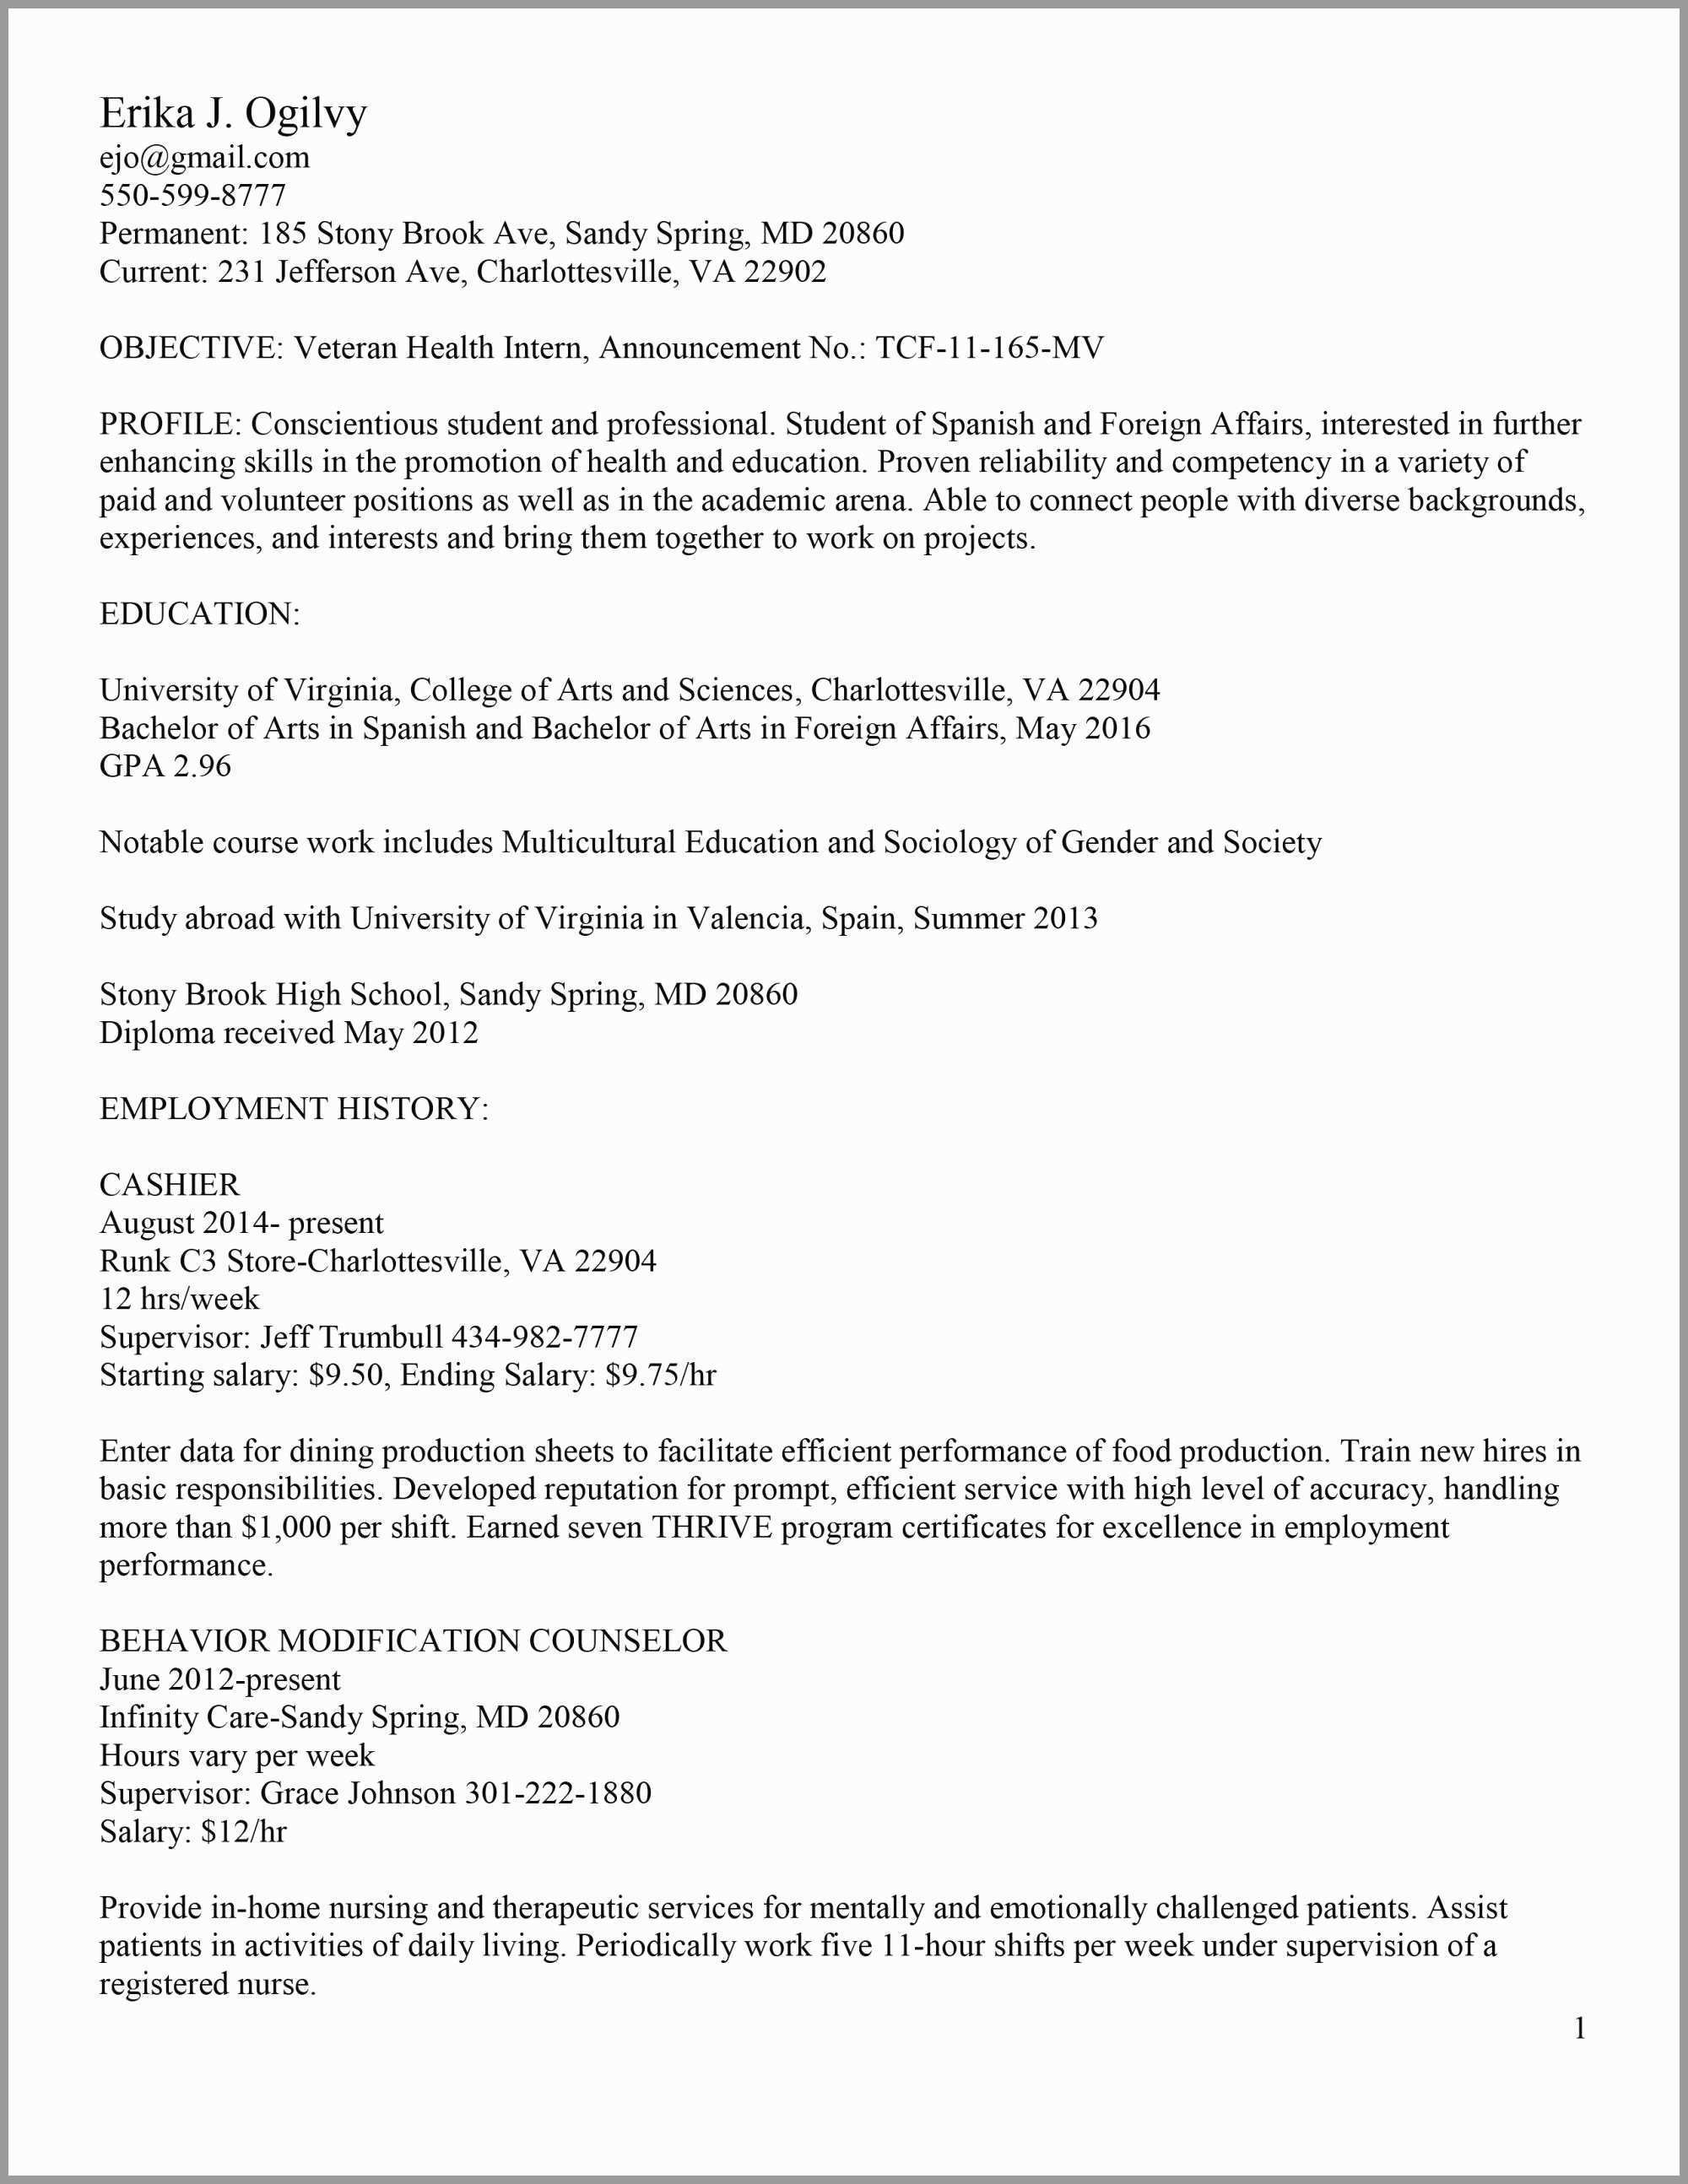 Tech theatre Resume Template - Professional theatre Resume Template Cute Tech theatre Resume